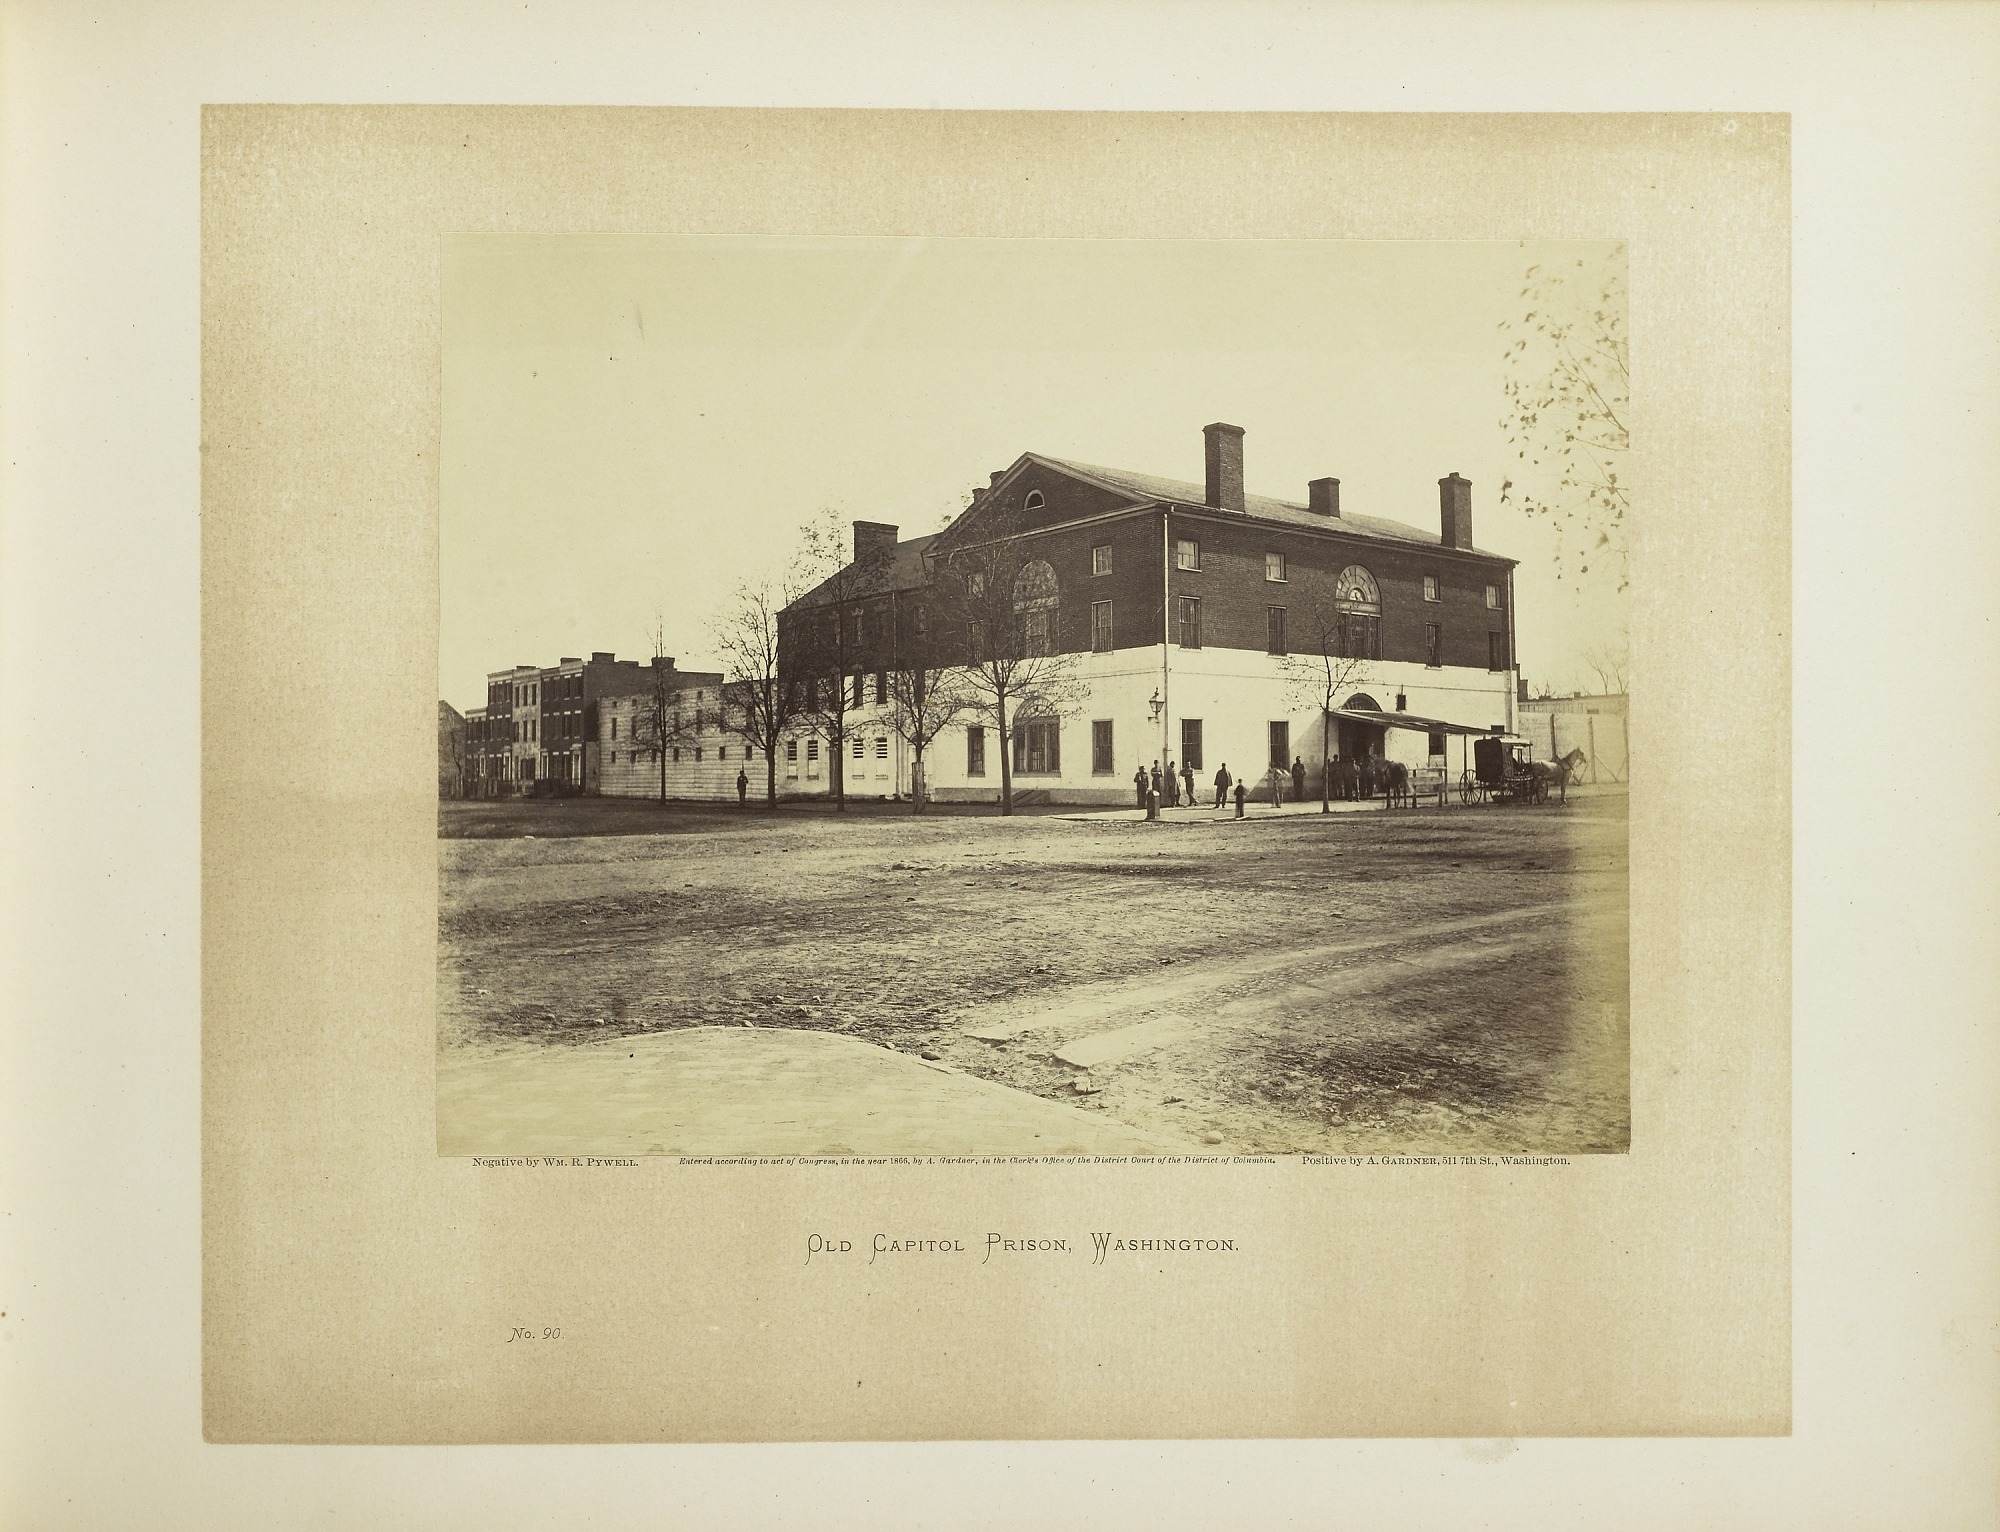 Plate 90. Old Capitol Prison, Washington